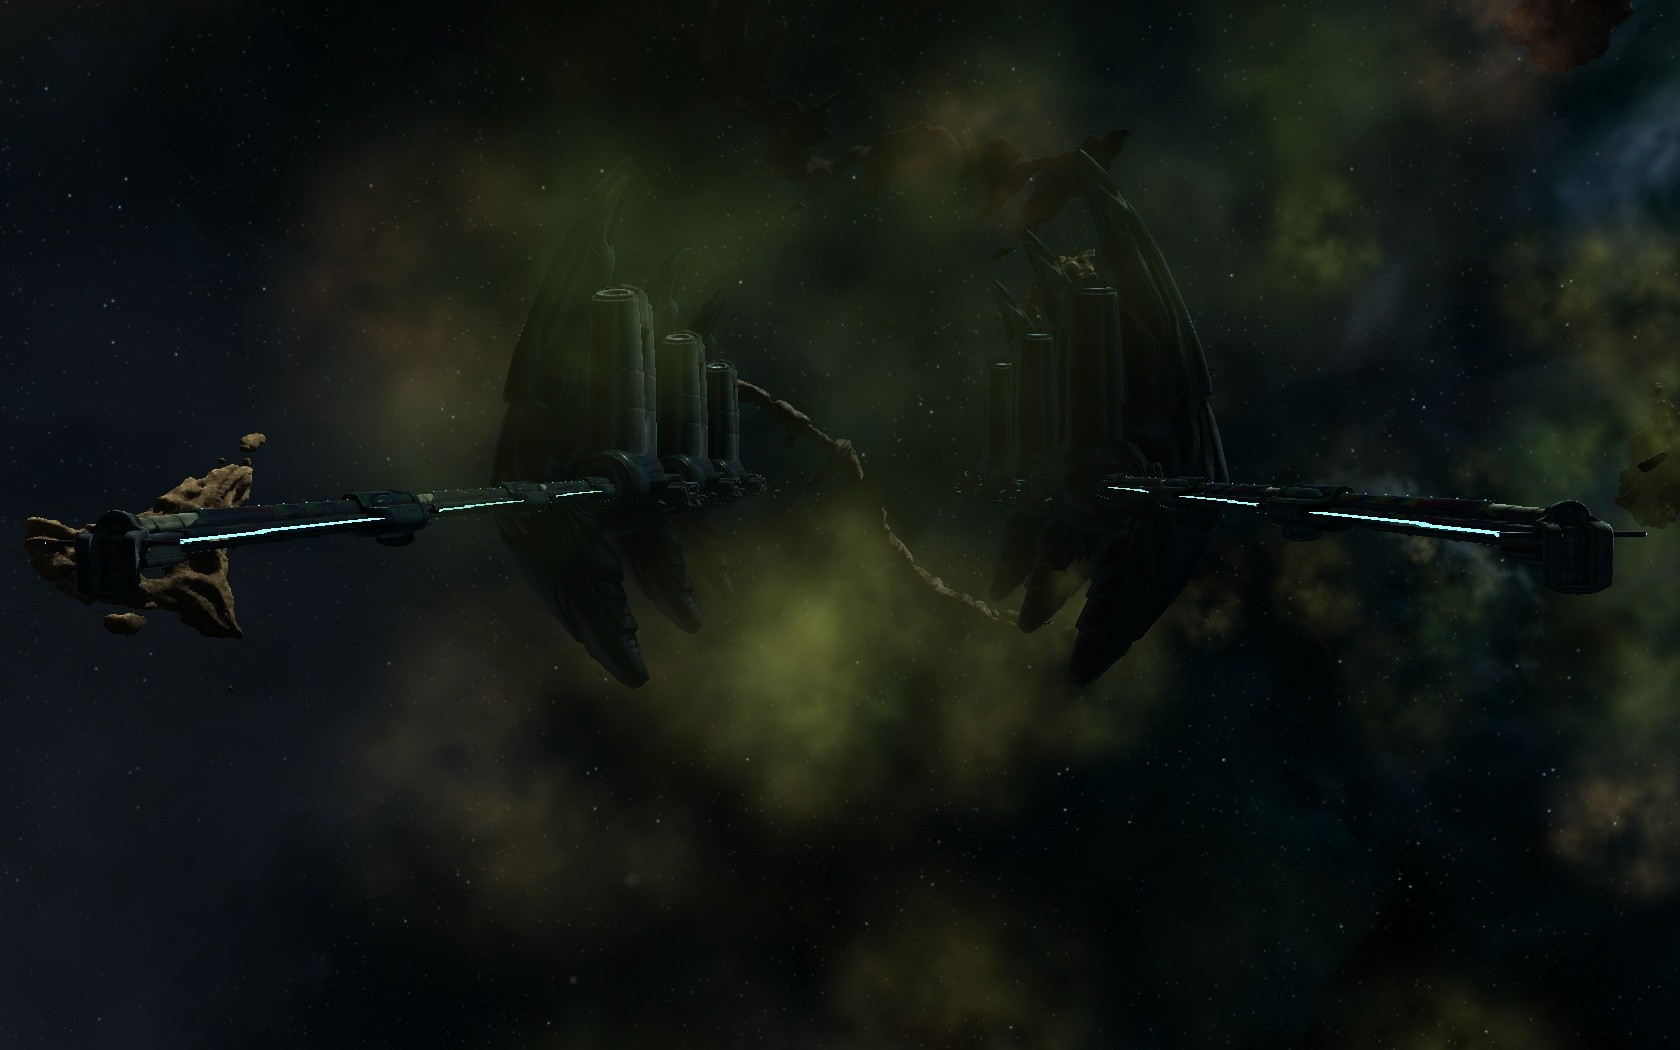 EVE Online - To the infinite